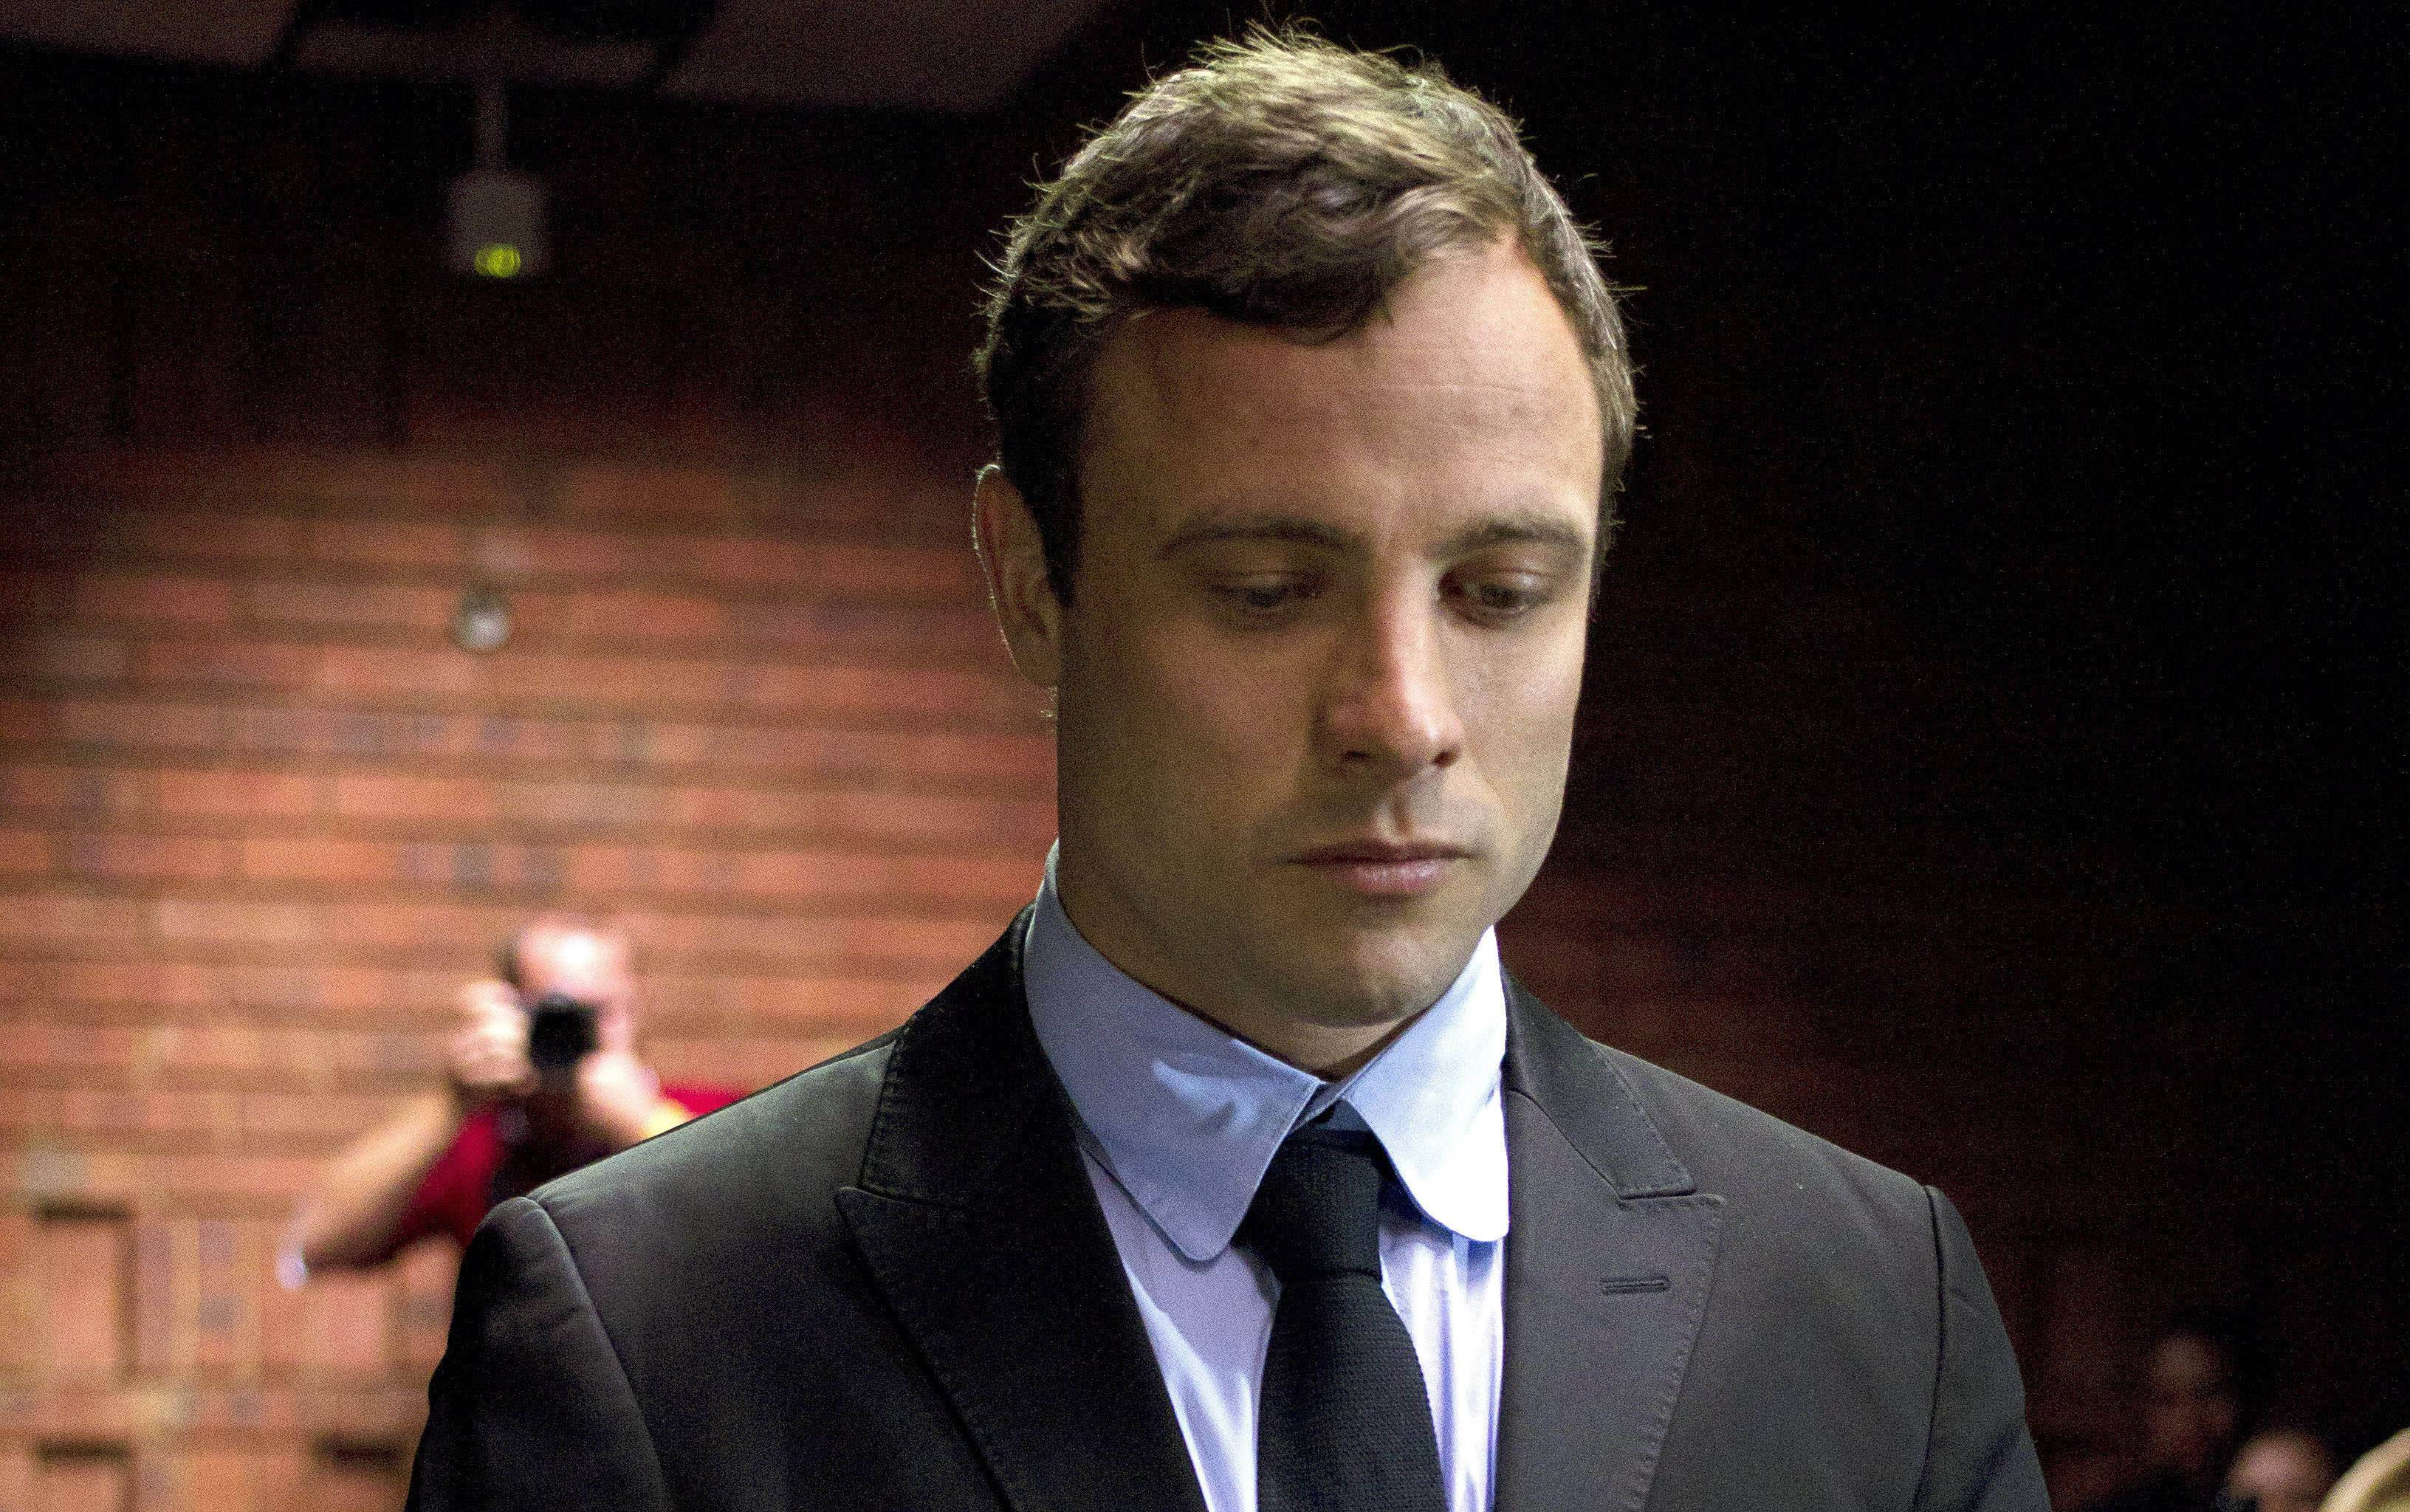 Double-amputee Olympian Oscar Pistorius is charged with fatally shooting his girlfriend last year. His trial starts next week.